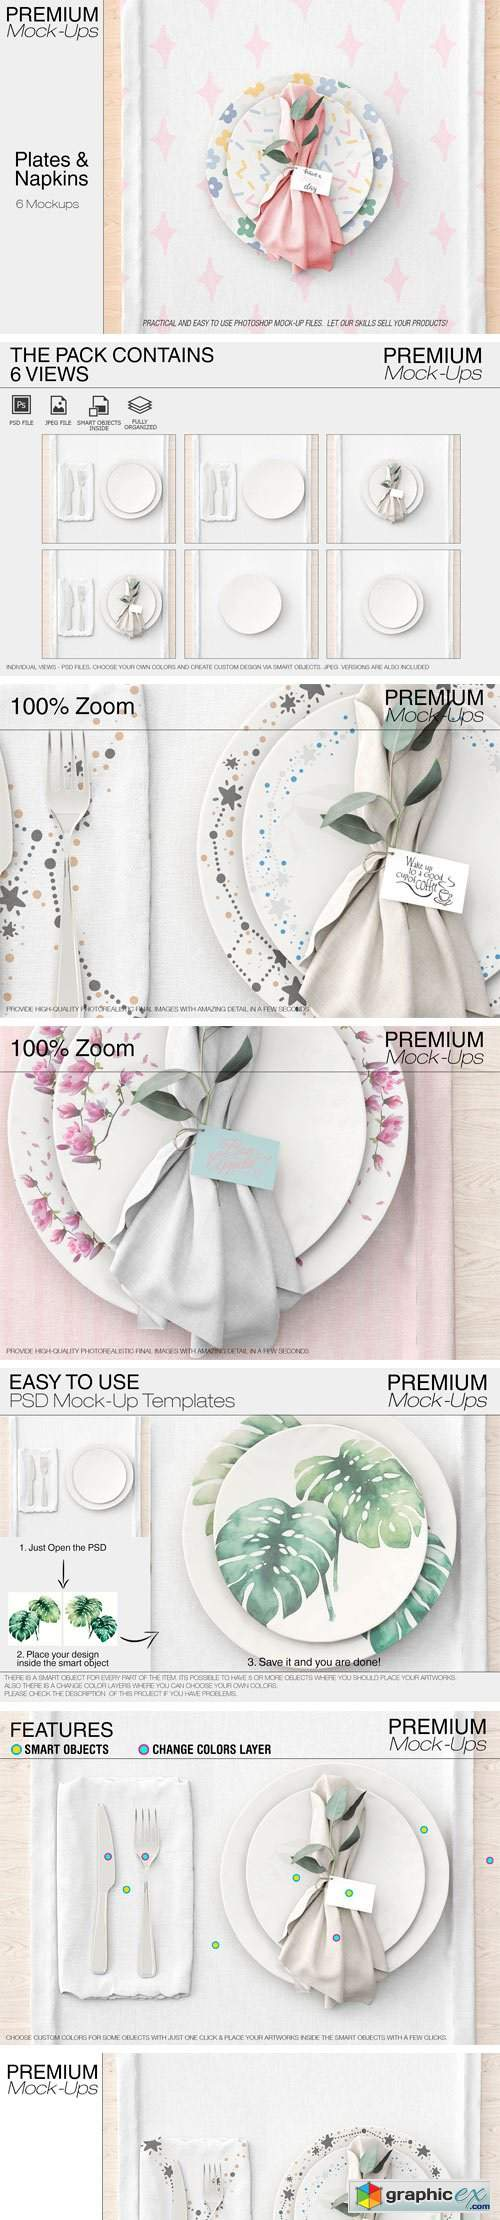 Plates & Tablecloth Set 2362548